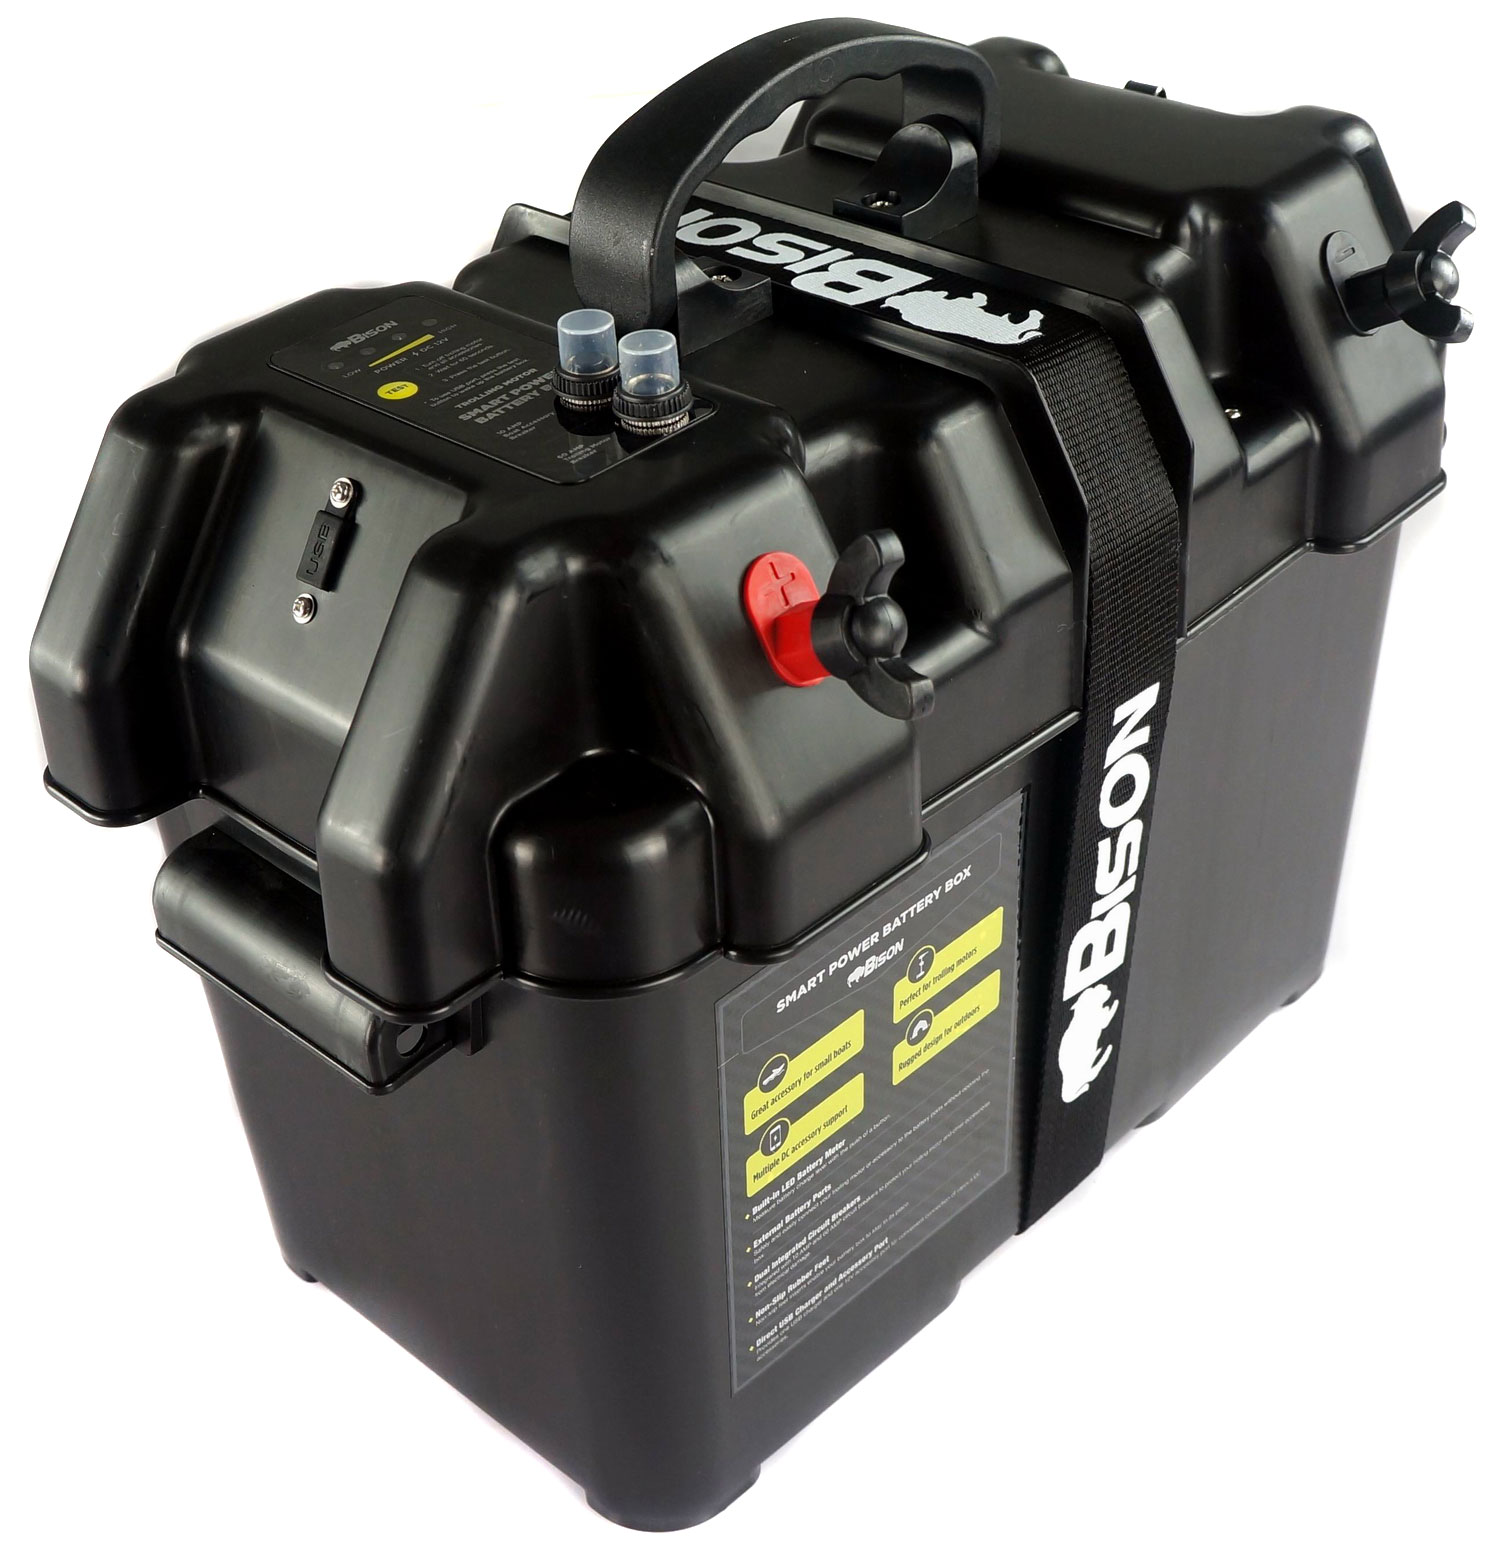 BISON BATTERY BOX CARRIER WITH USB CHARGER,LED METER ...